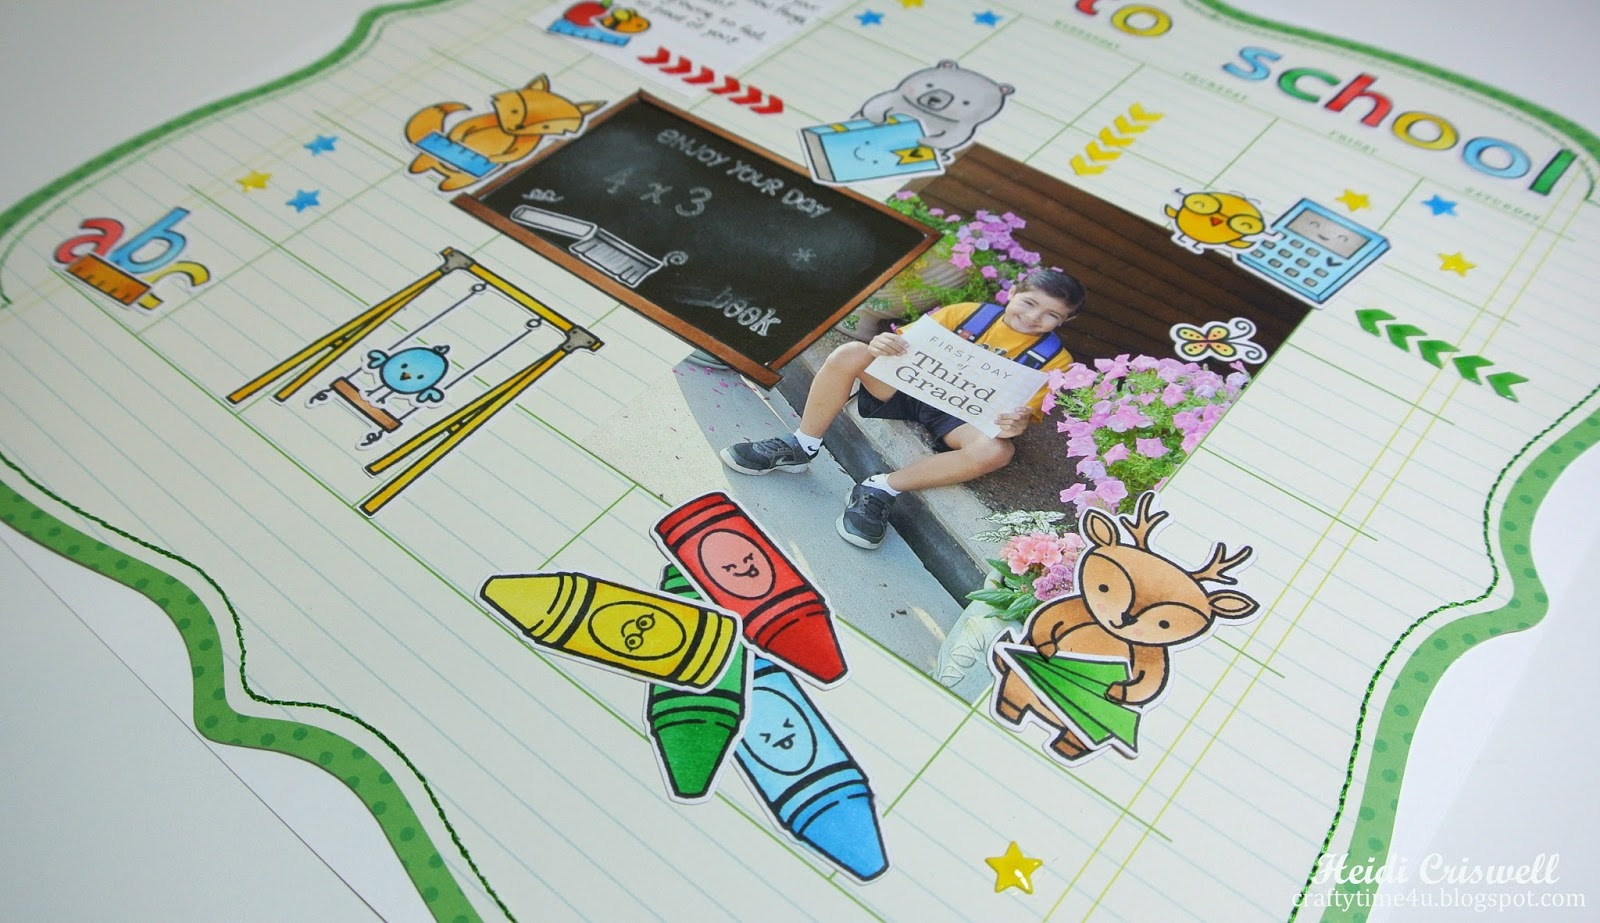 Scrapbook paper companies - Finally As A Mat I Used A Calendar Page That I Have But You Can Find Those From Many Scrapbook Paper Companies